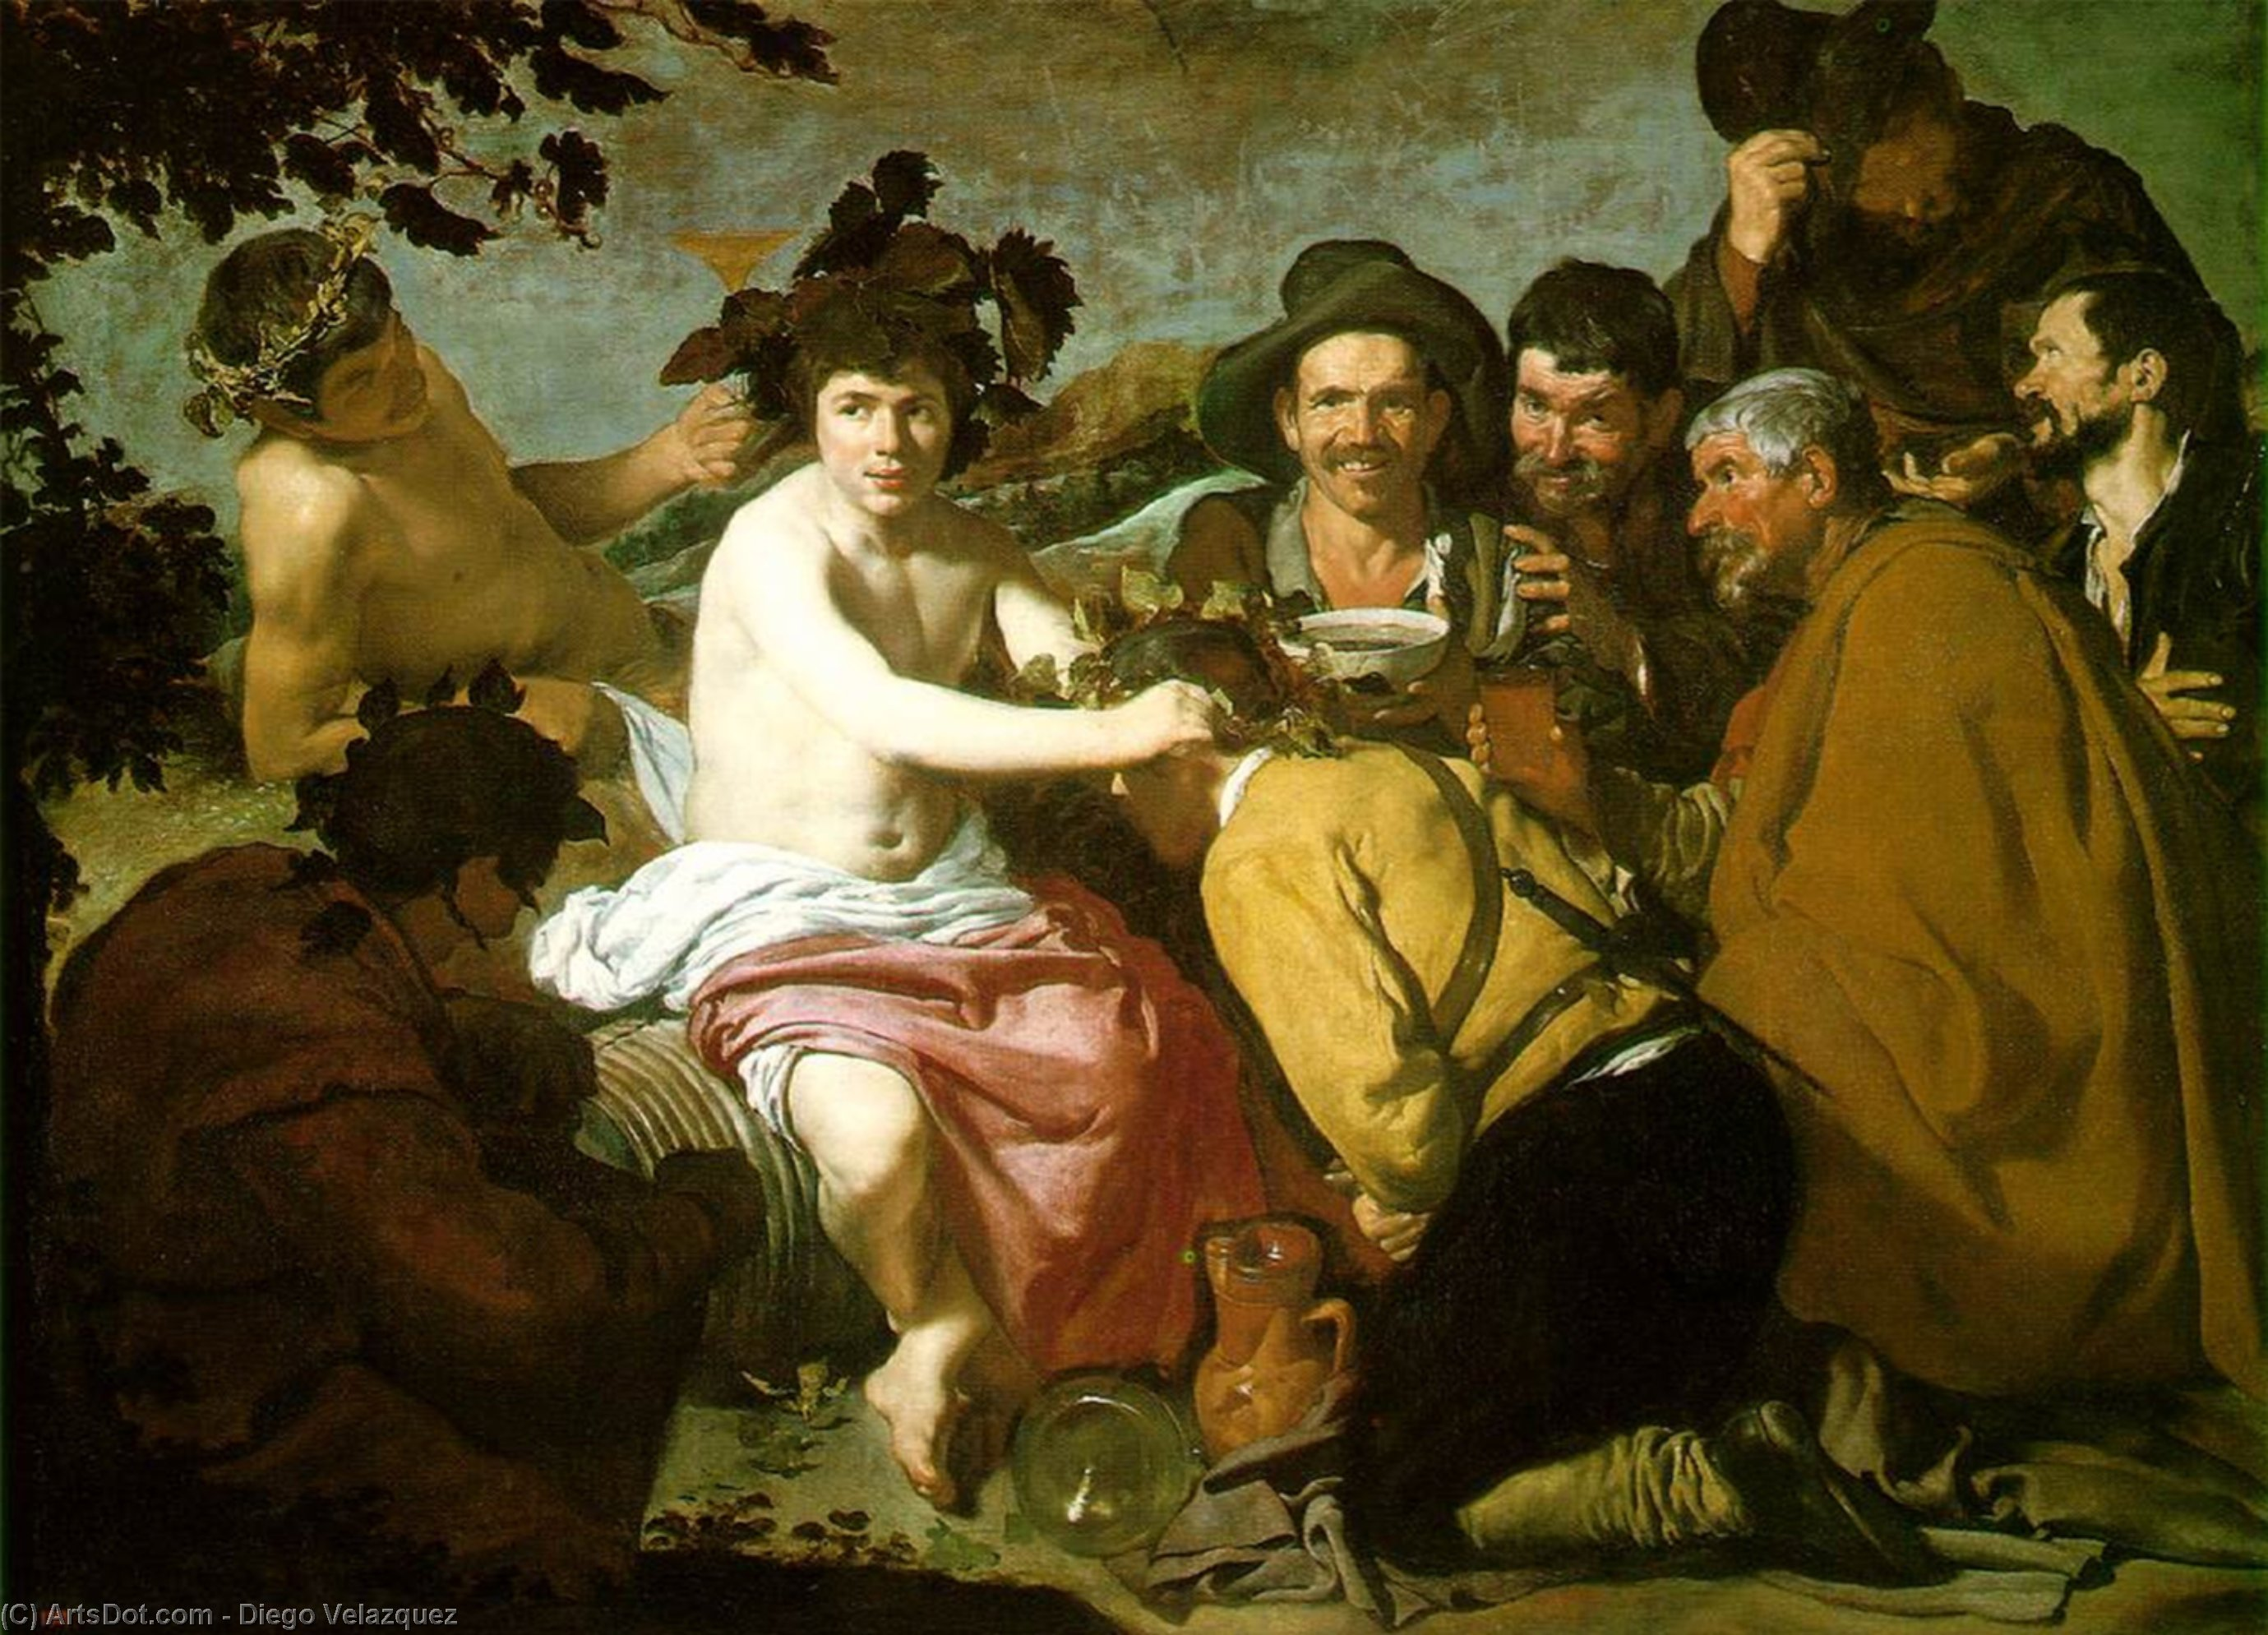 Feast bacchus by Diego Velazquez (1599-1660, Spain)